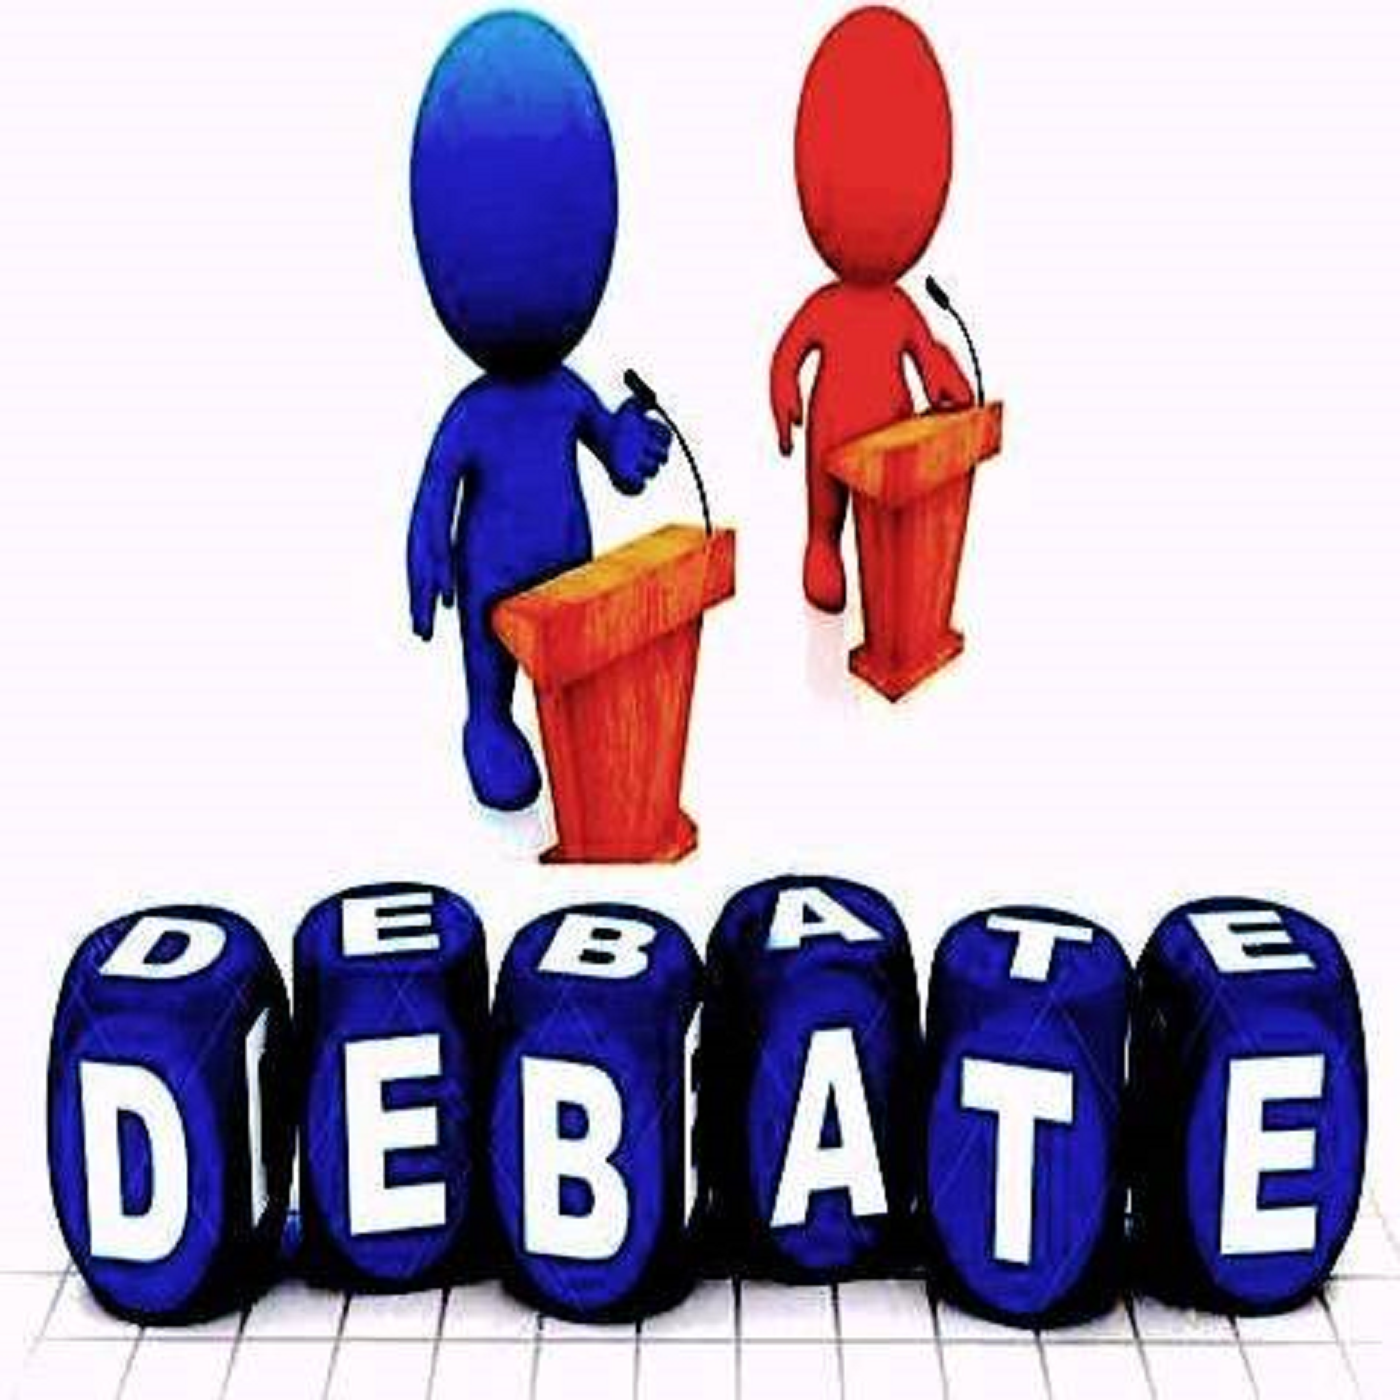 Talk-The-Talk Intermediate-Schools Debates Challenge - reruns from the archvies